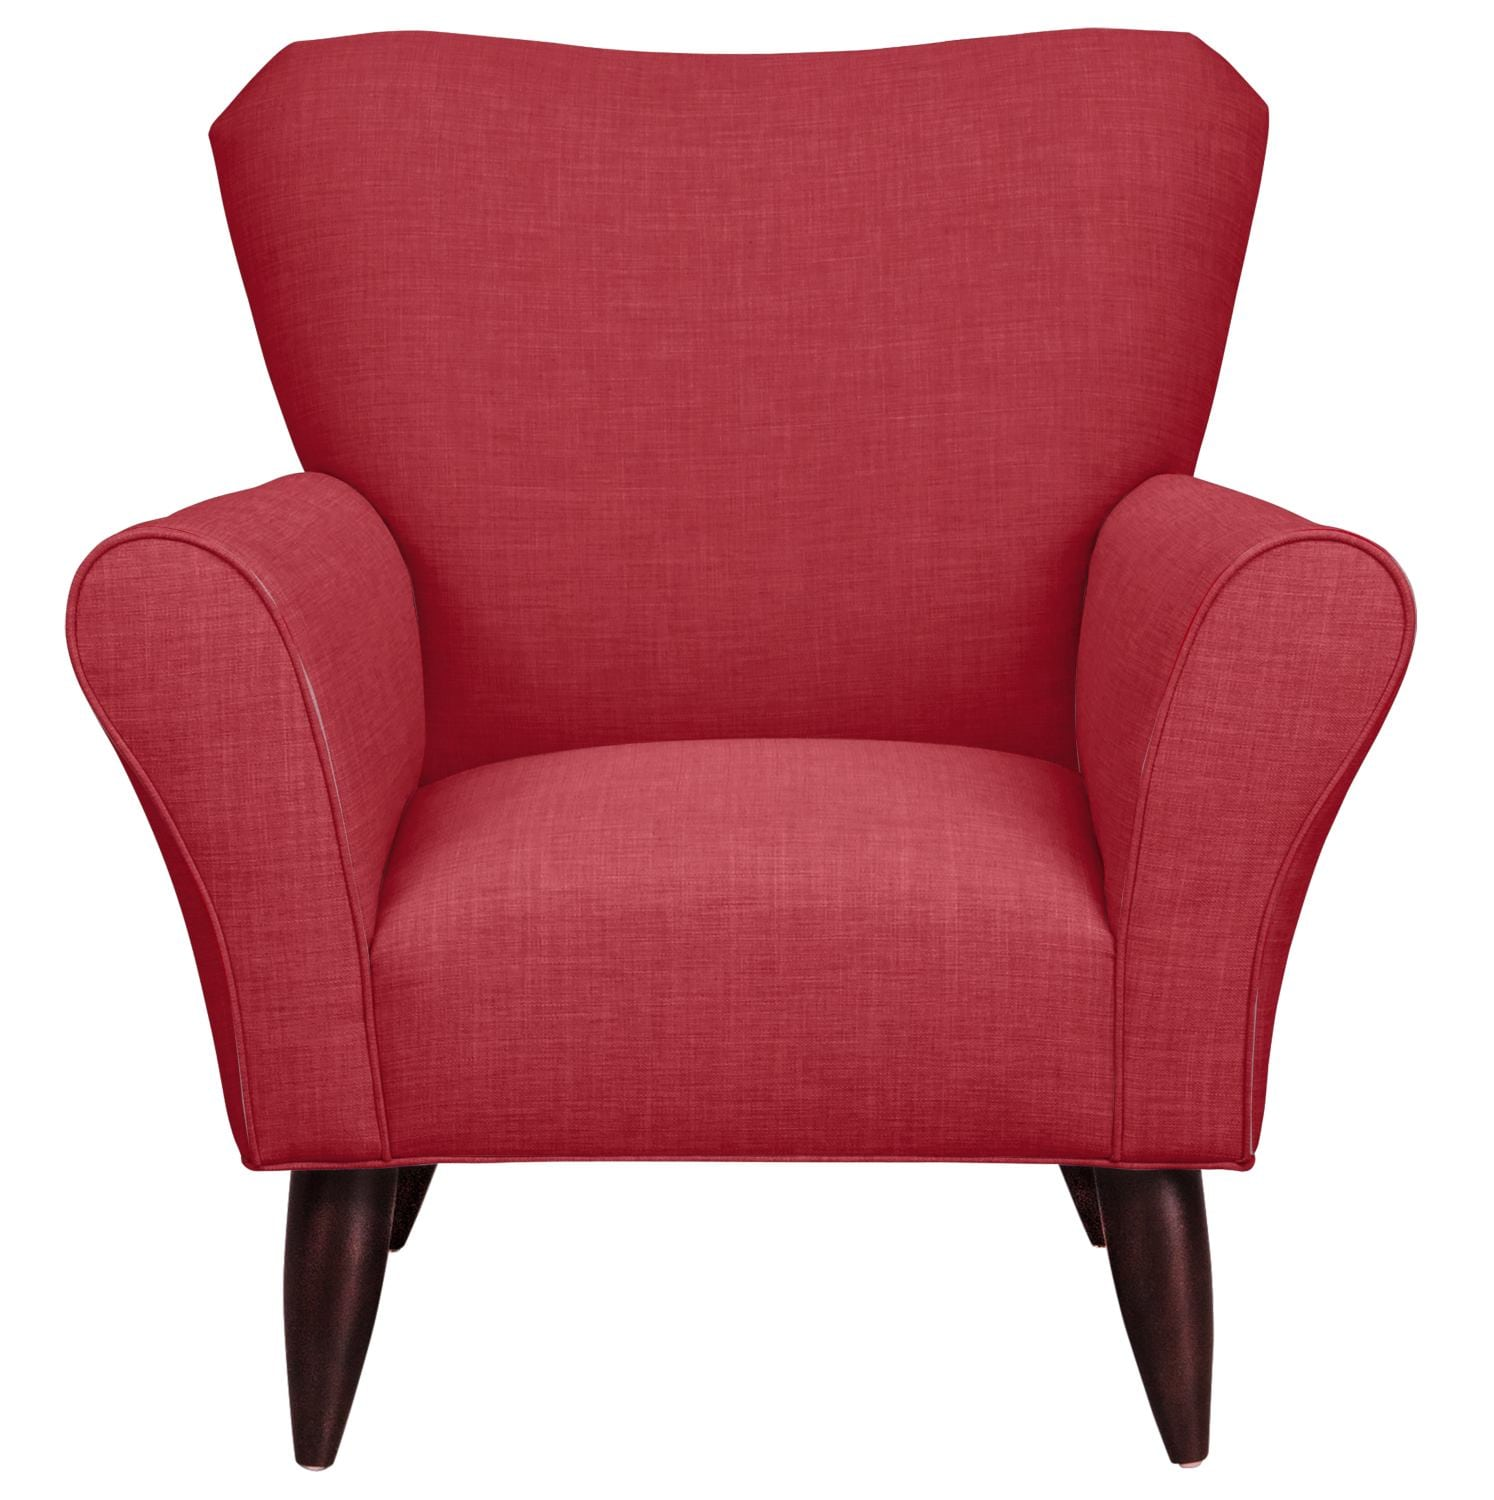 Living Room Furniture - Jessie Chair w/ Oakley III Tomato Fabric